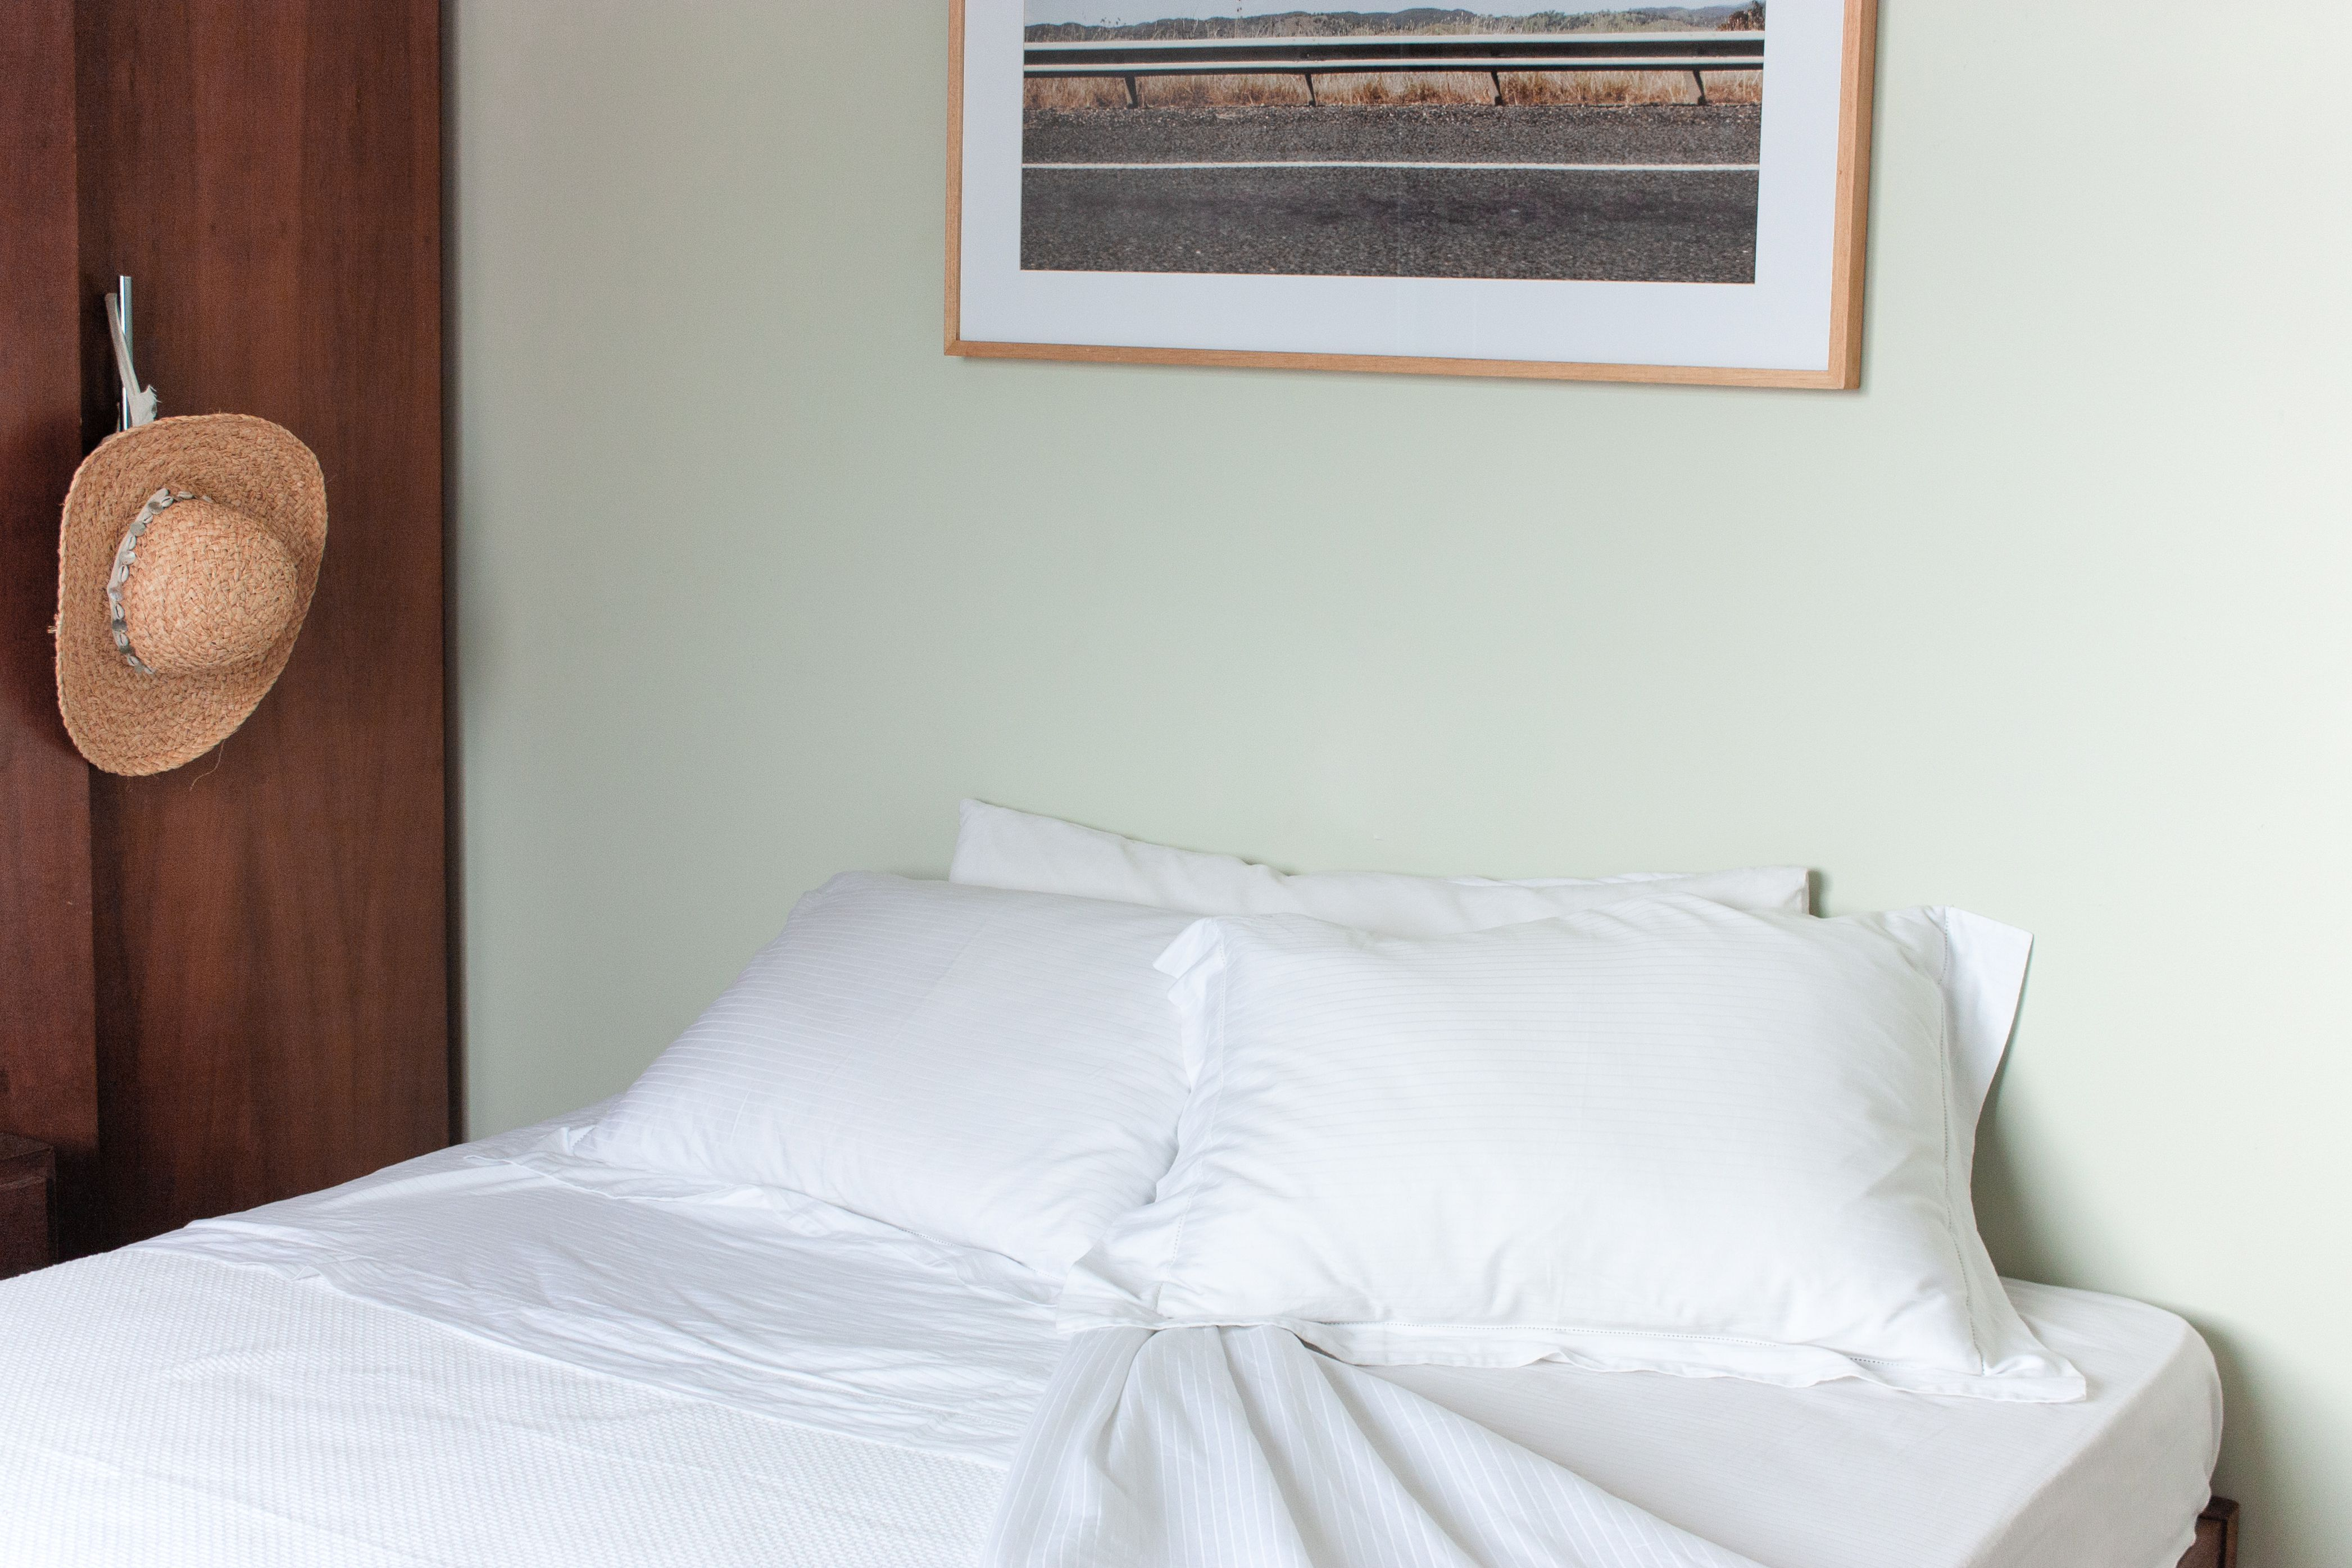 How To Clean Your Mattress Naturally